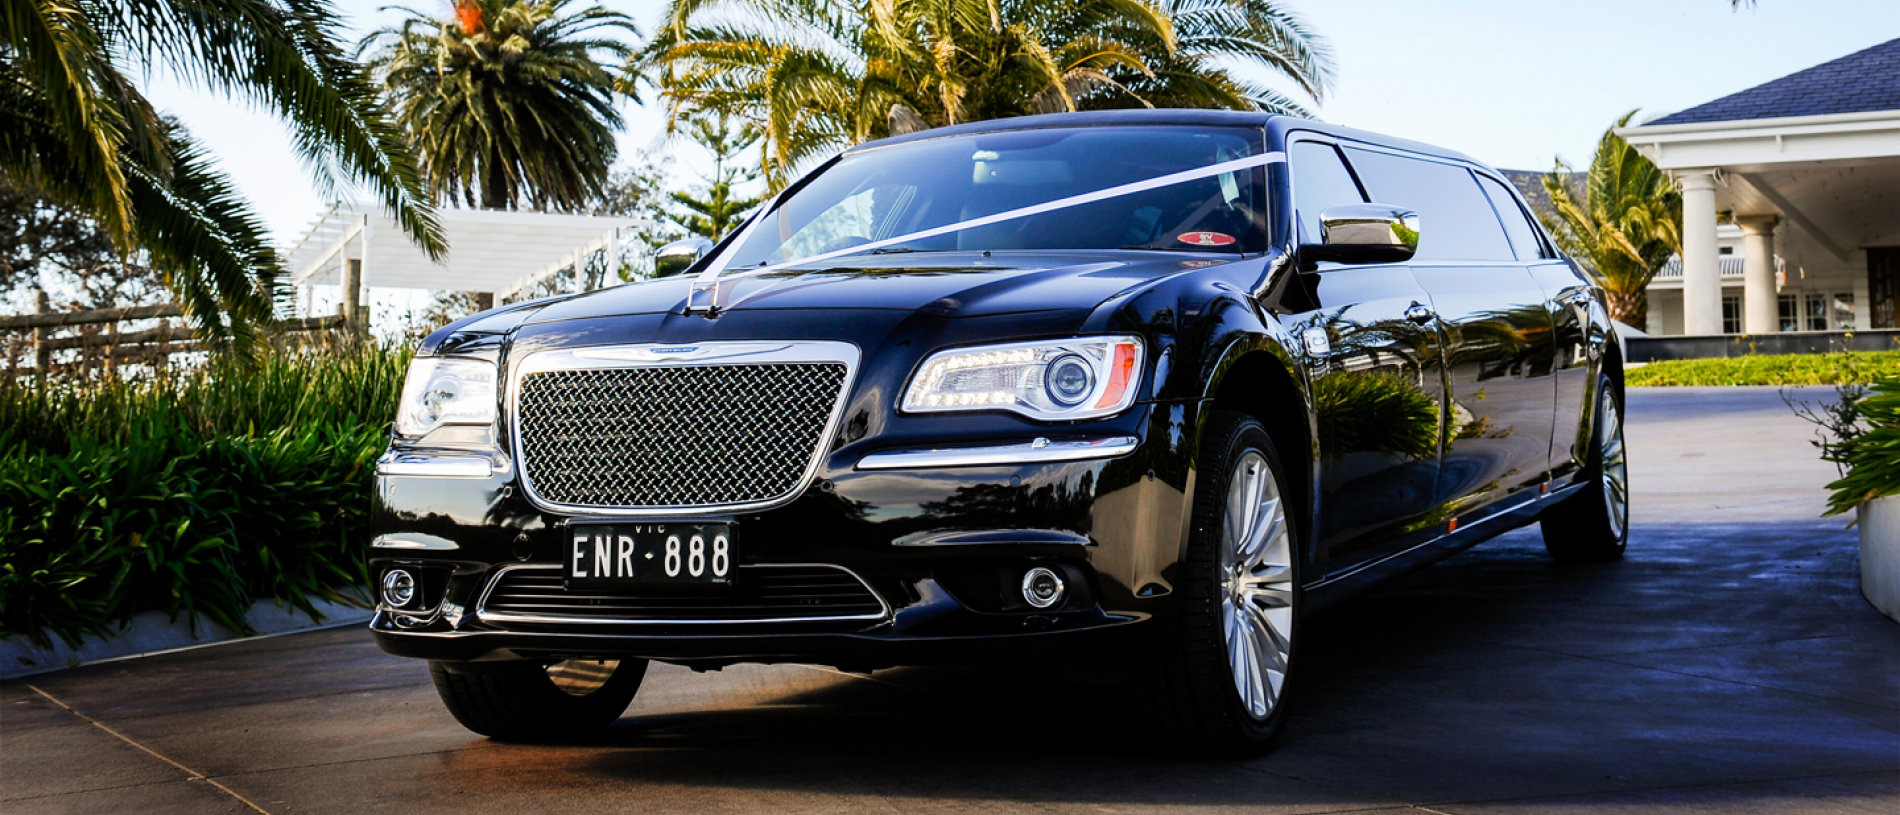 West Melbourne Limo Hire - Enrik Limousines